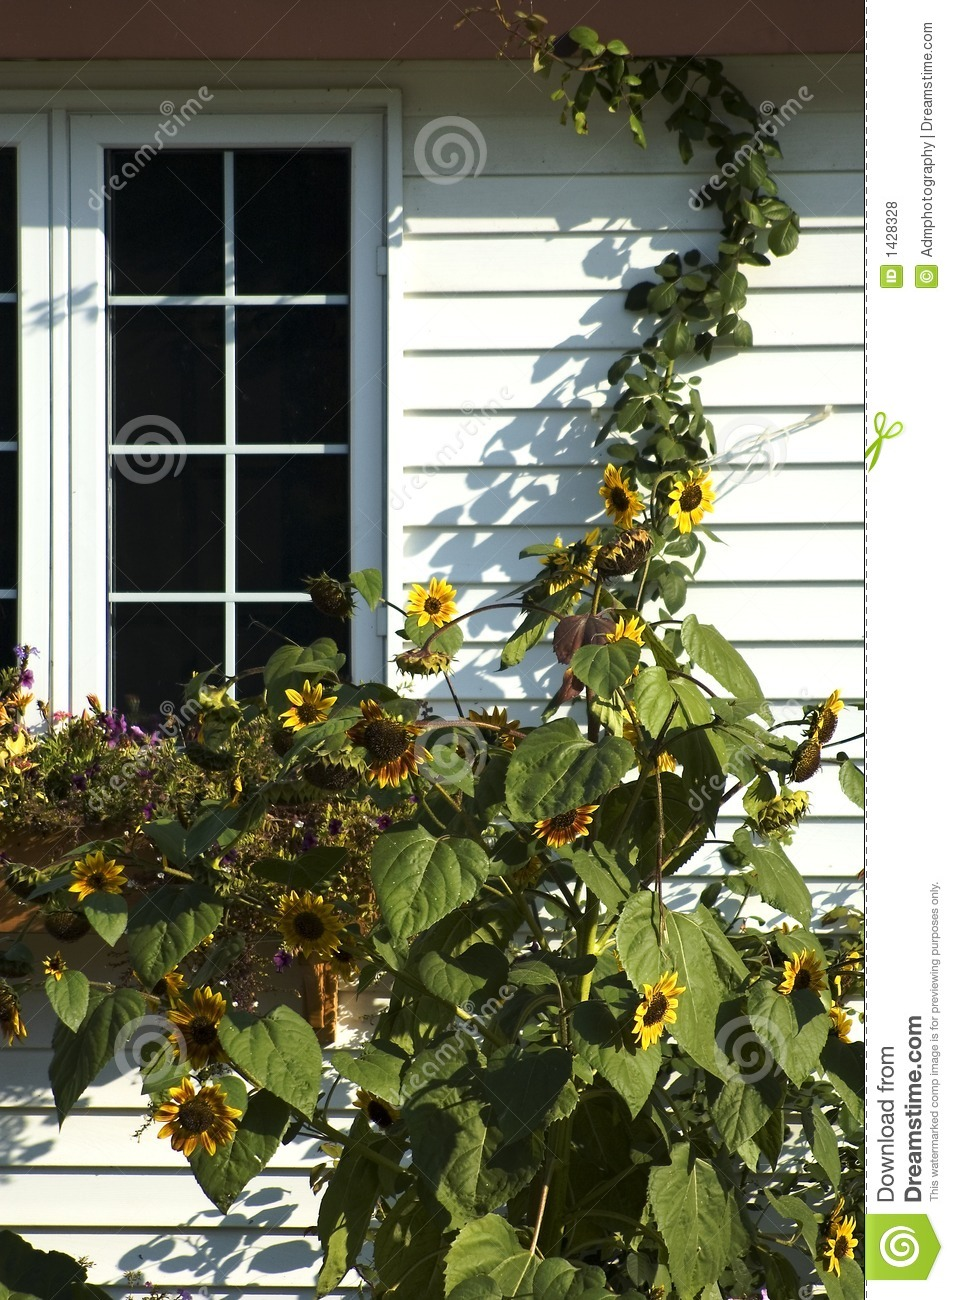 Download Sunflowers and window stock photo. Image of window, panes - 1428328